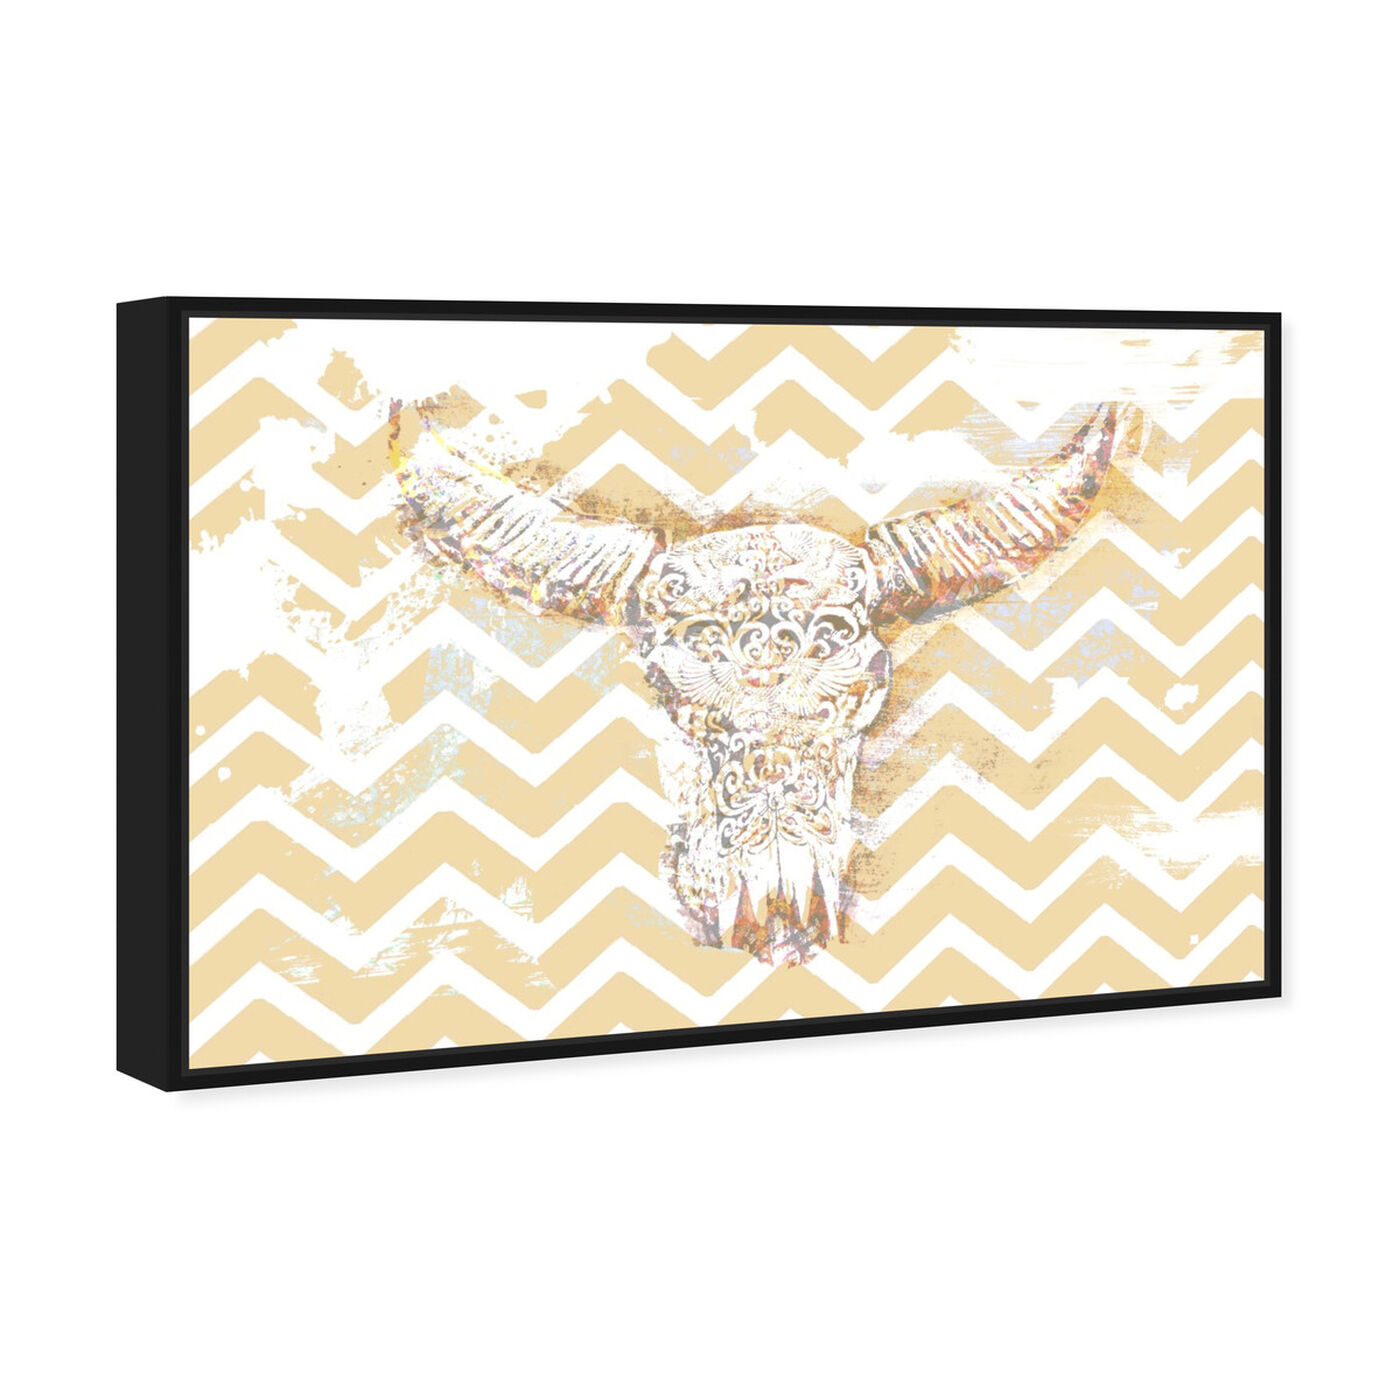 Angled view of Chevron Skull featuring animals and farm animals art.